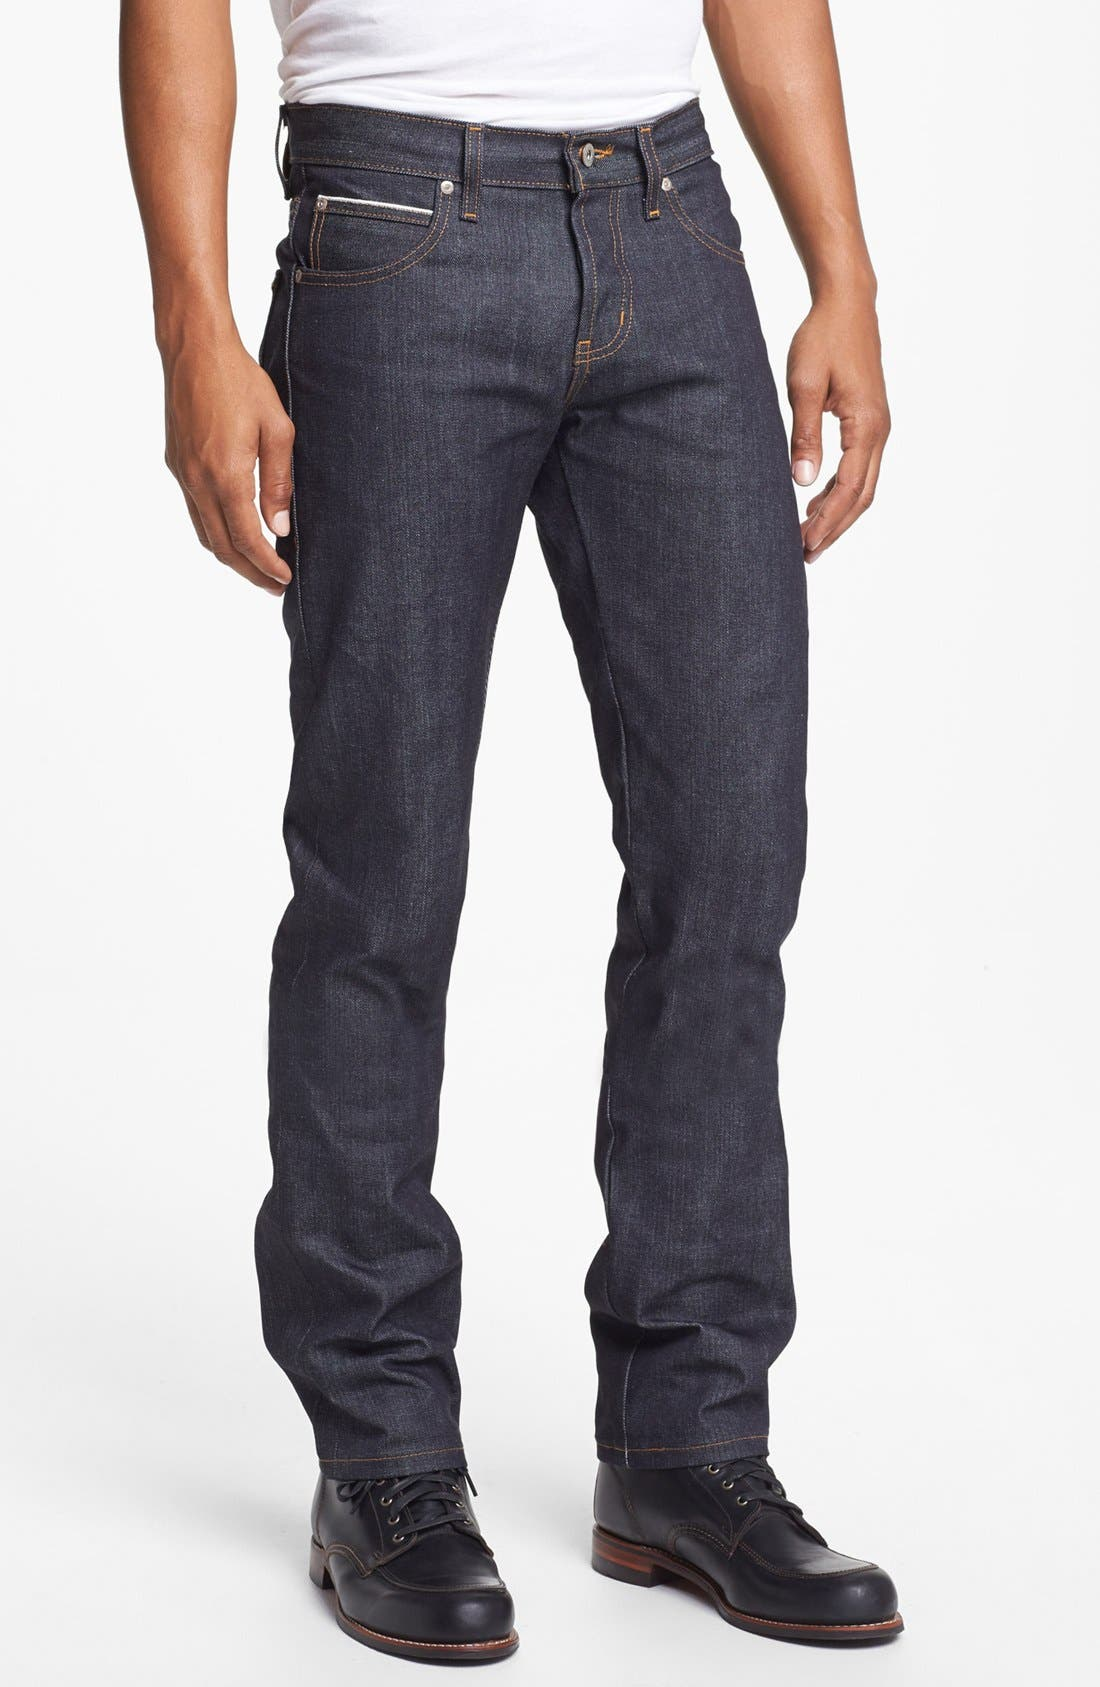 Alternate Image 1 Selected - Naked & Famous Denim Super Skinny Guy Skinny Fit Raw Selvedge Jeans (Left Hand Twill Selvedge)